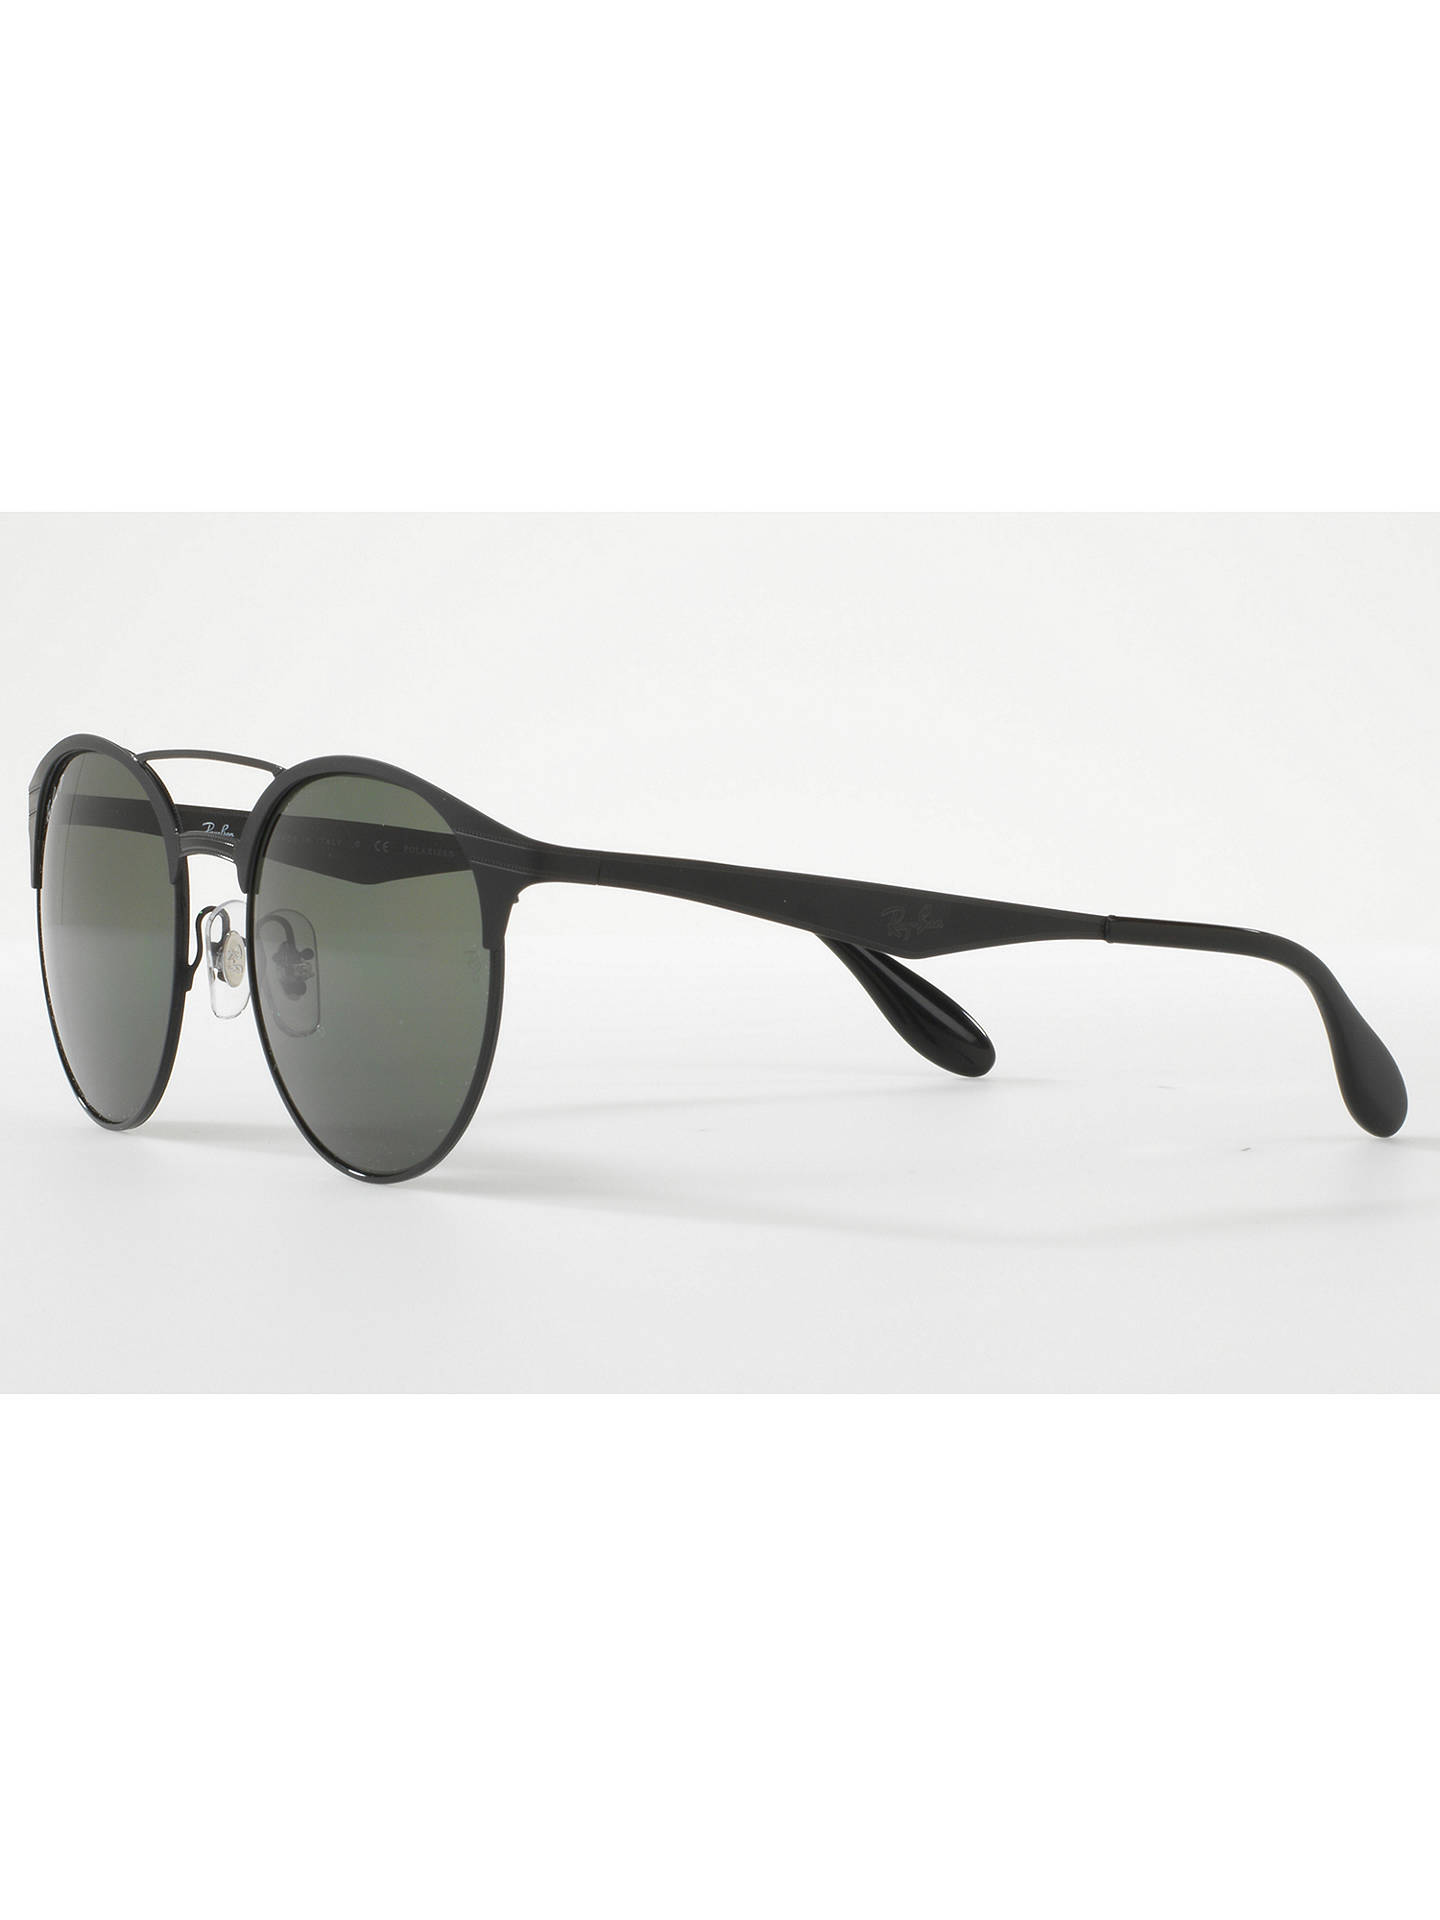 Buy Ray-Ban RB3545 Polarised Oval Sunglasses, Black/Dark Green Online at johnlewis.com